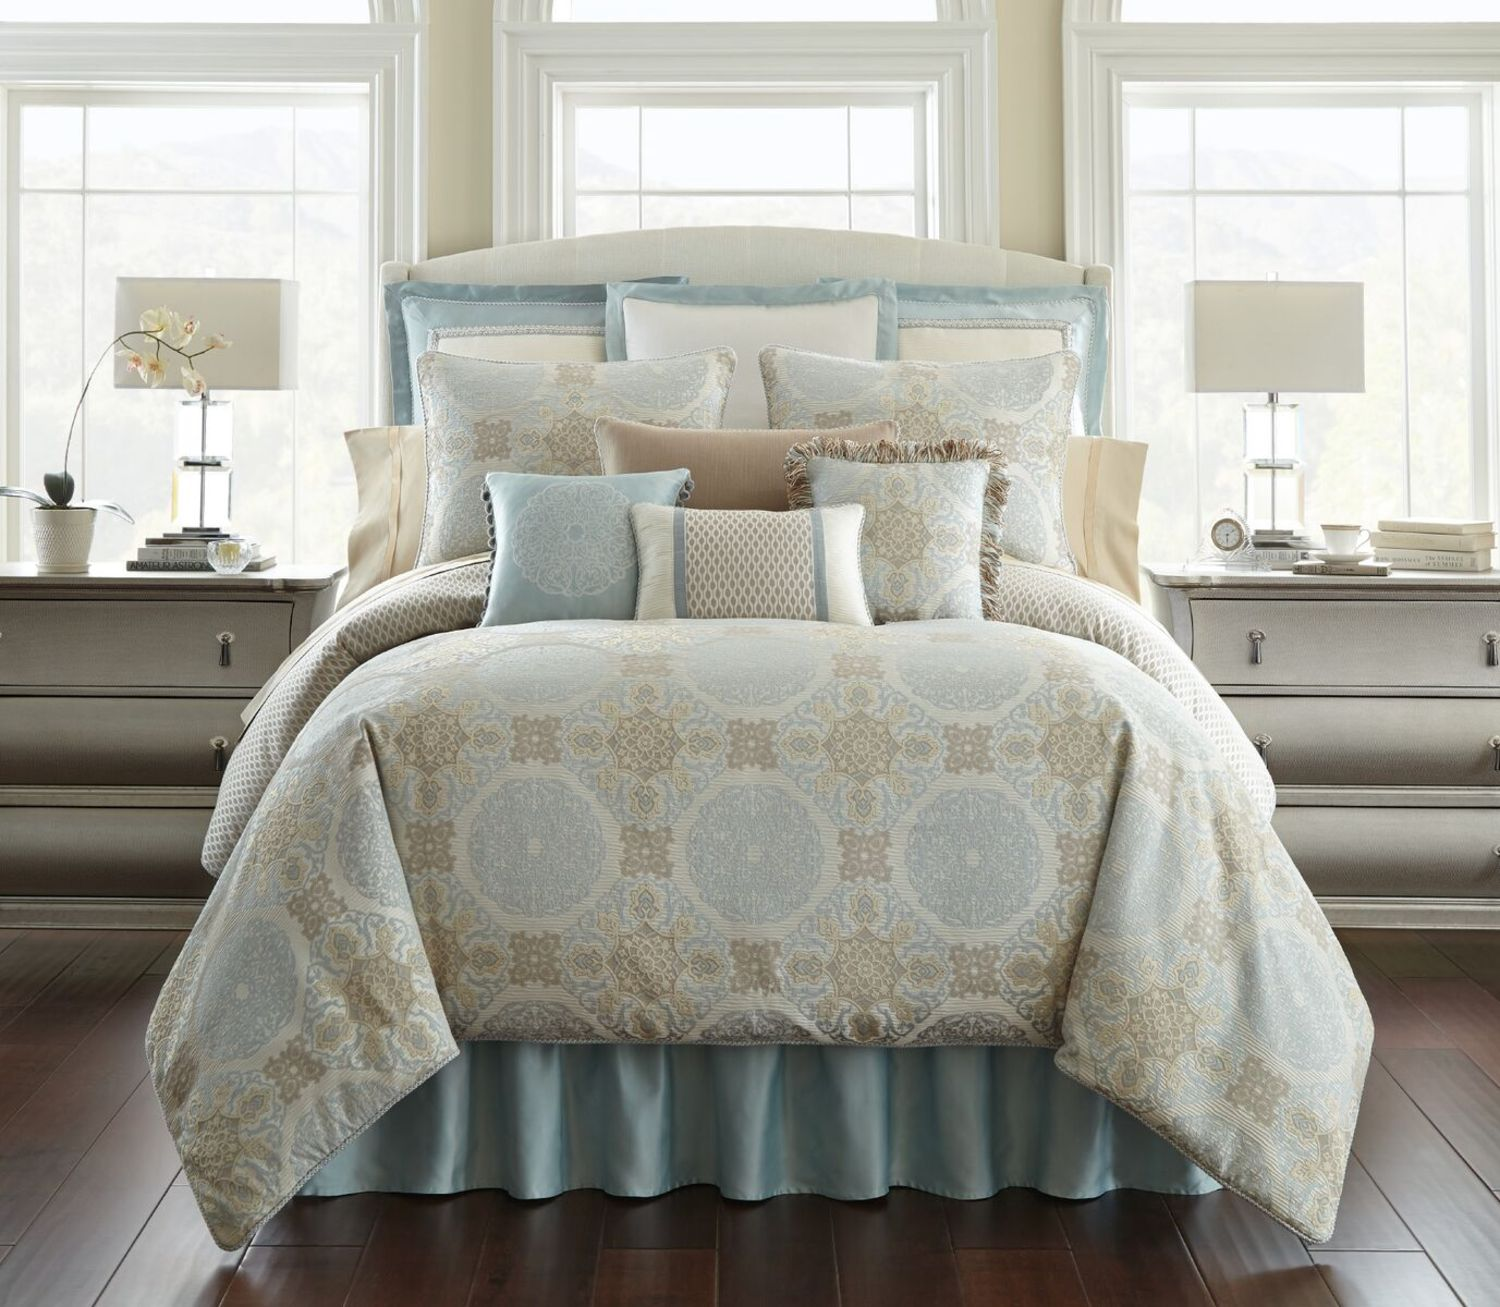 Jonet by Waterford Luxury Bedding by Waterford Luxury ...